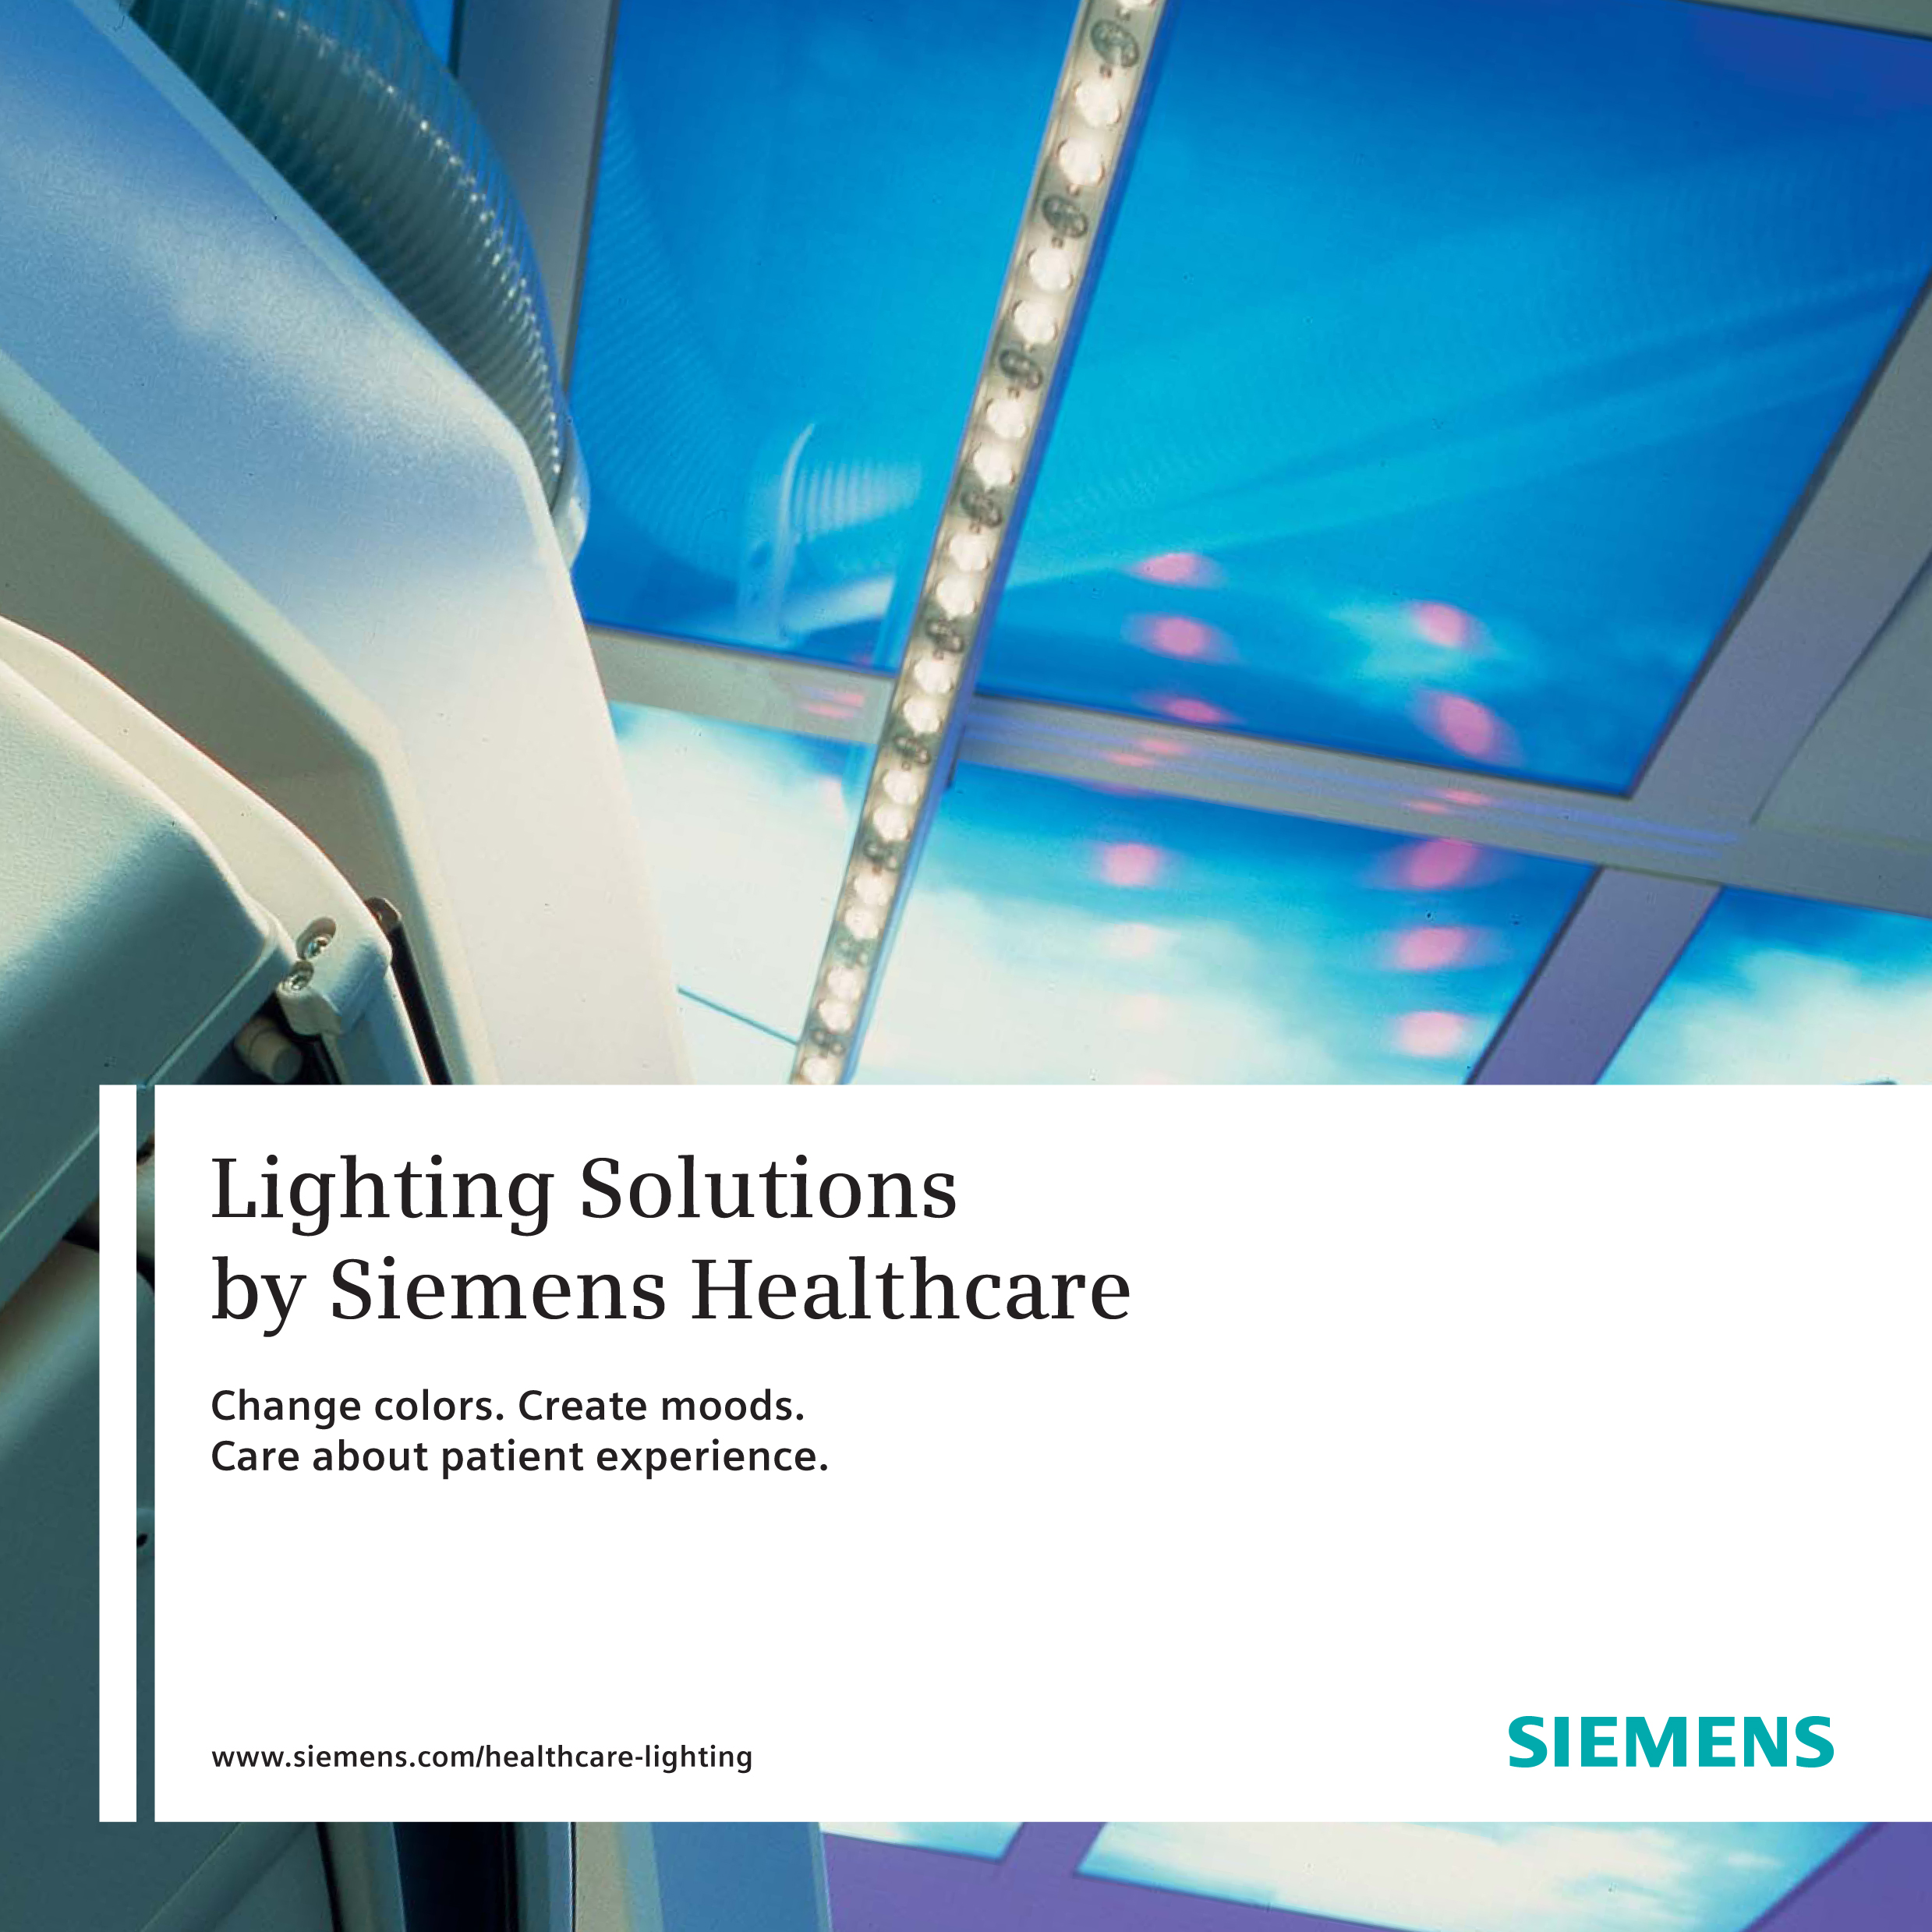 Siemens Healthcare | Lighting Solutions (englisch)